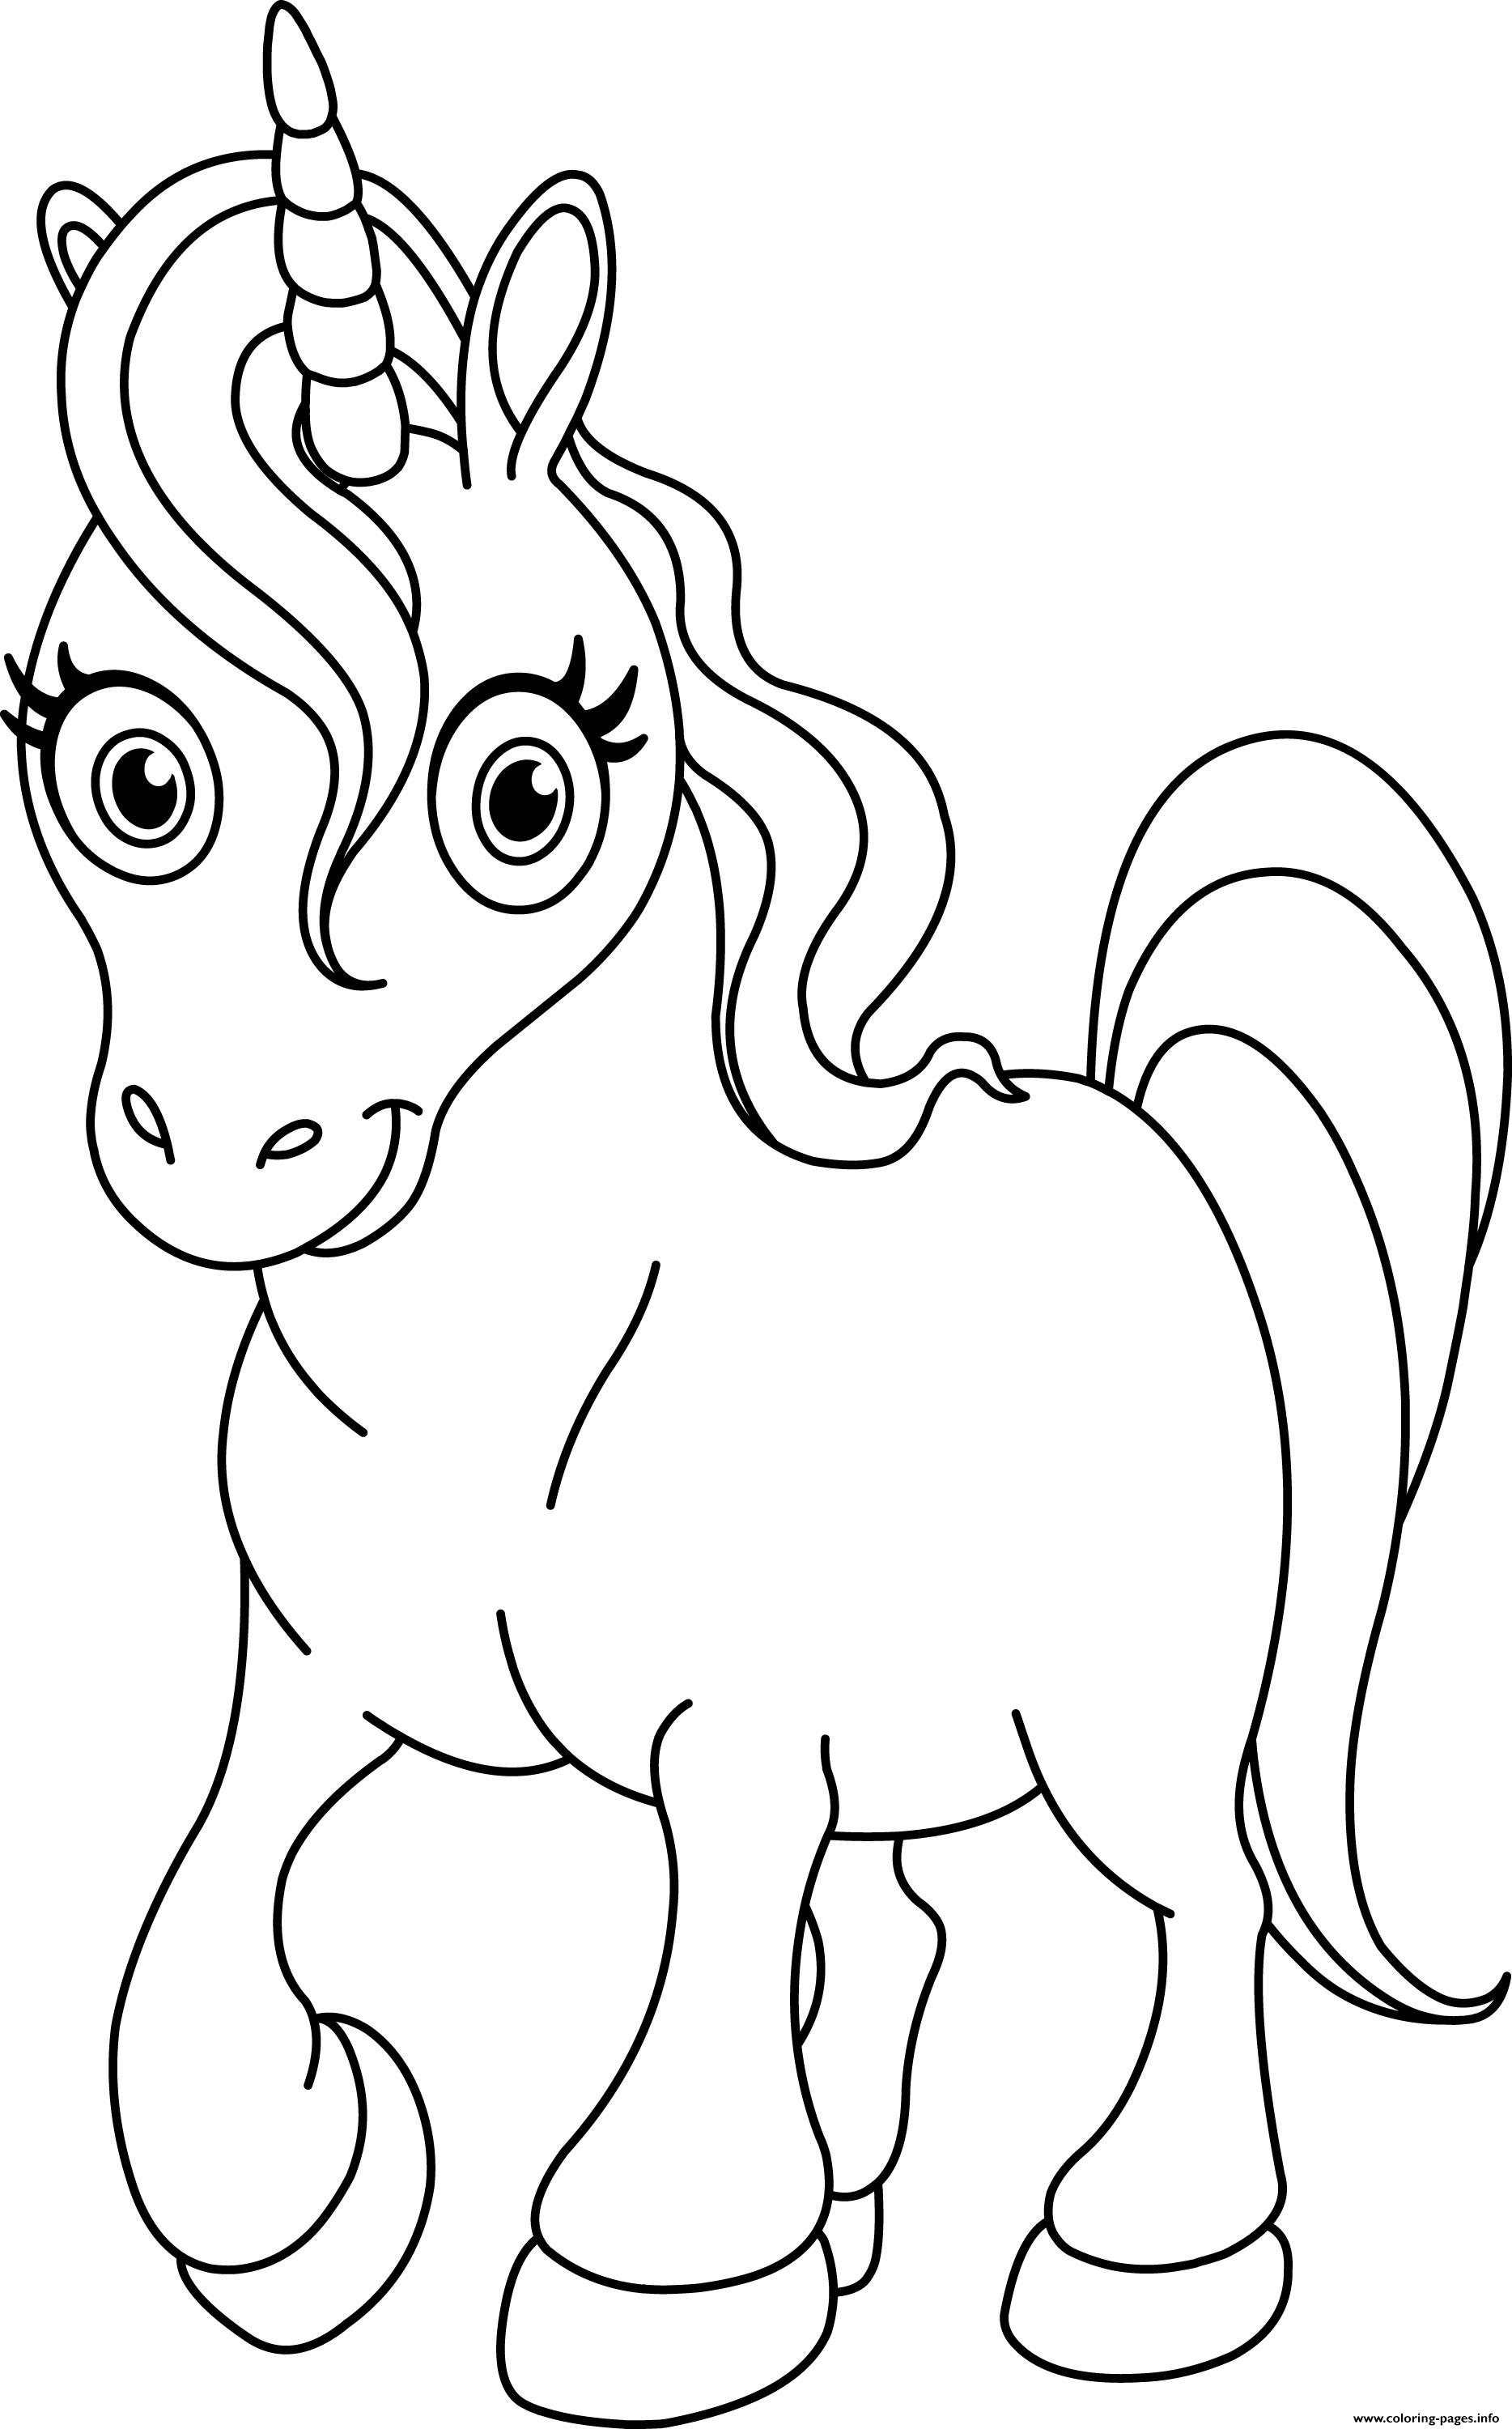 Top Unicorn Pictures To Print coloring pages